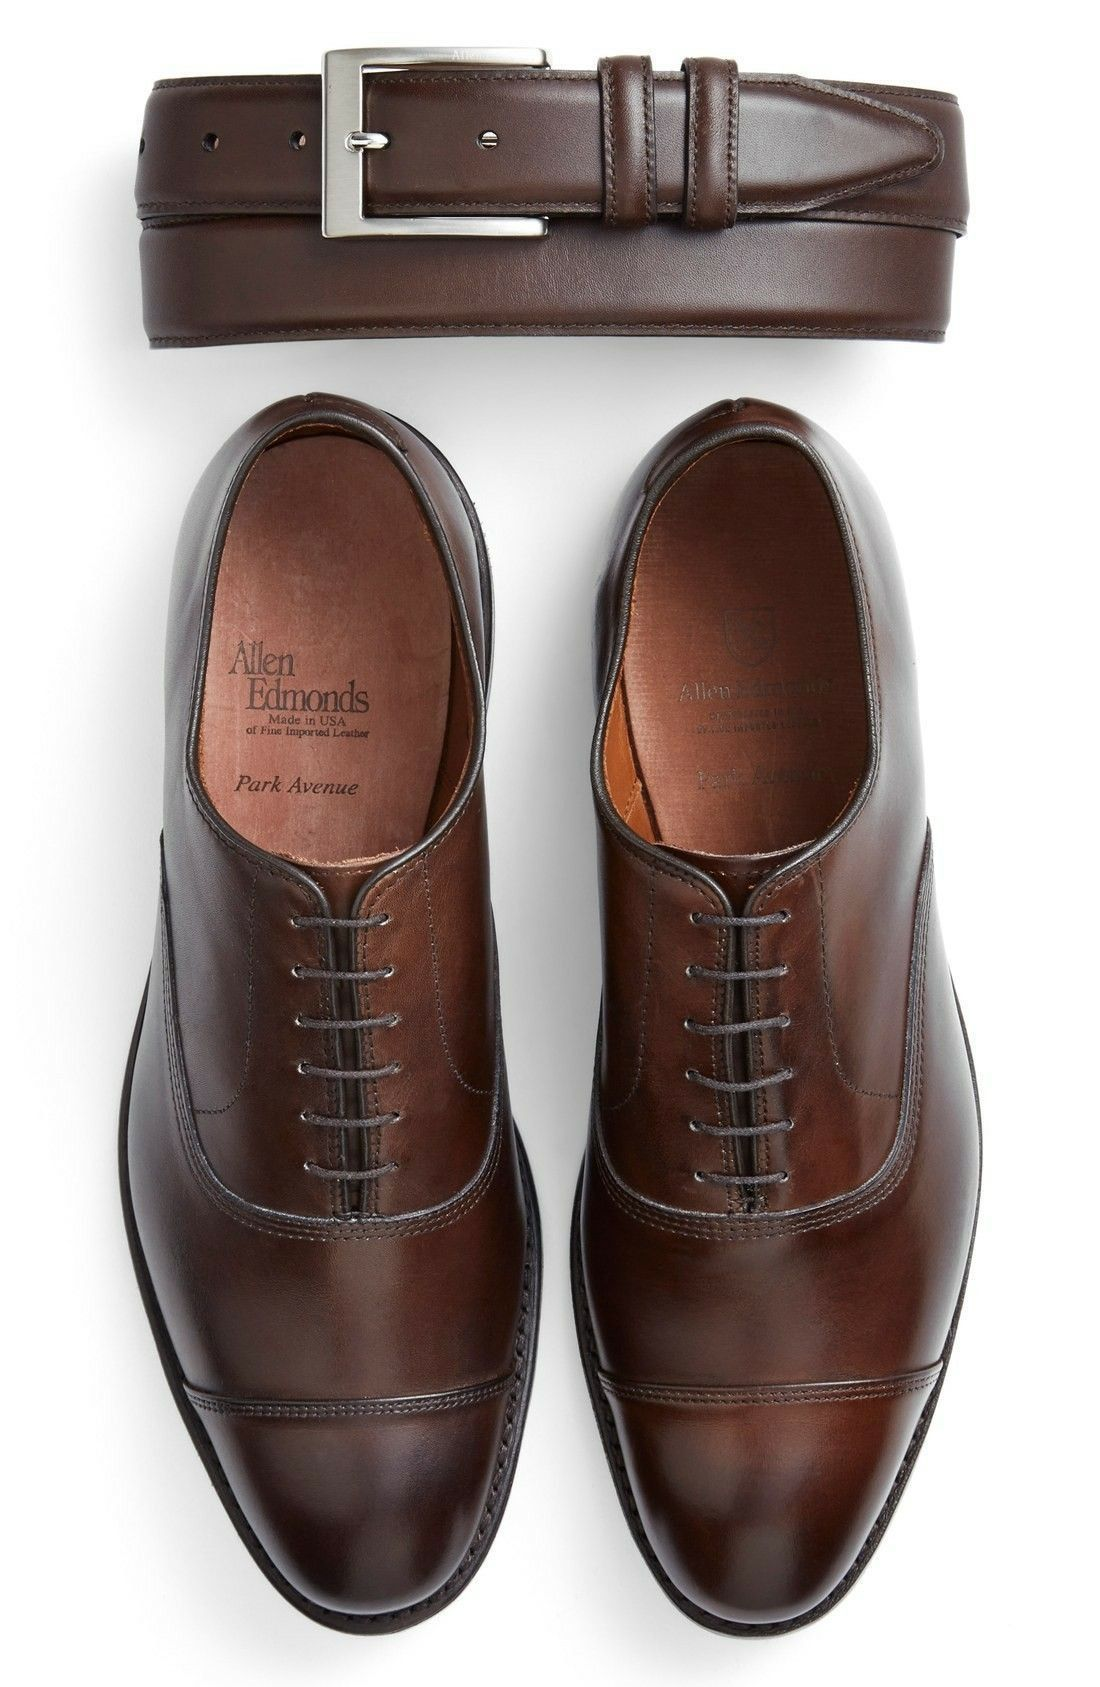 9b59bba3e1a9 Allen Edmonds Park Avenue Oxford in Dark Brown Burnished Leather ...